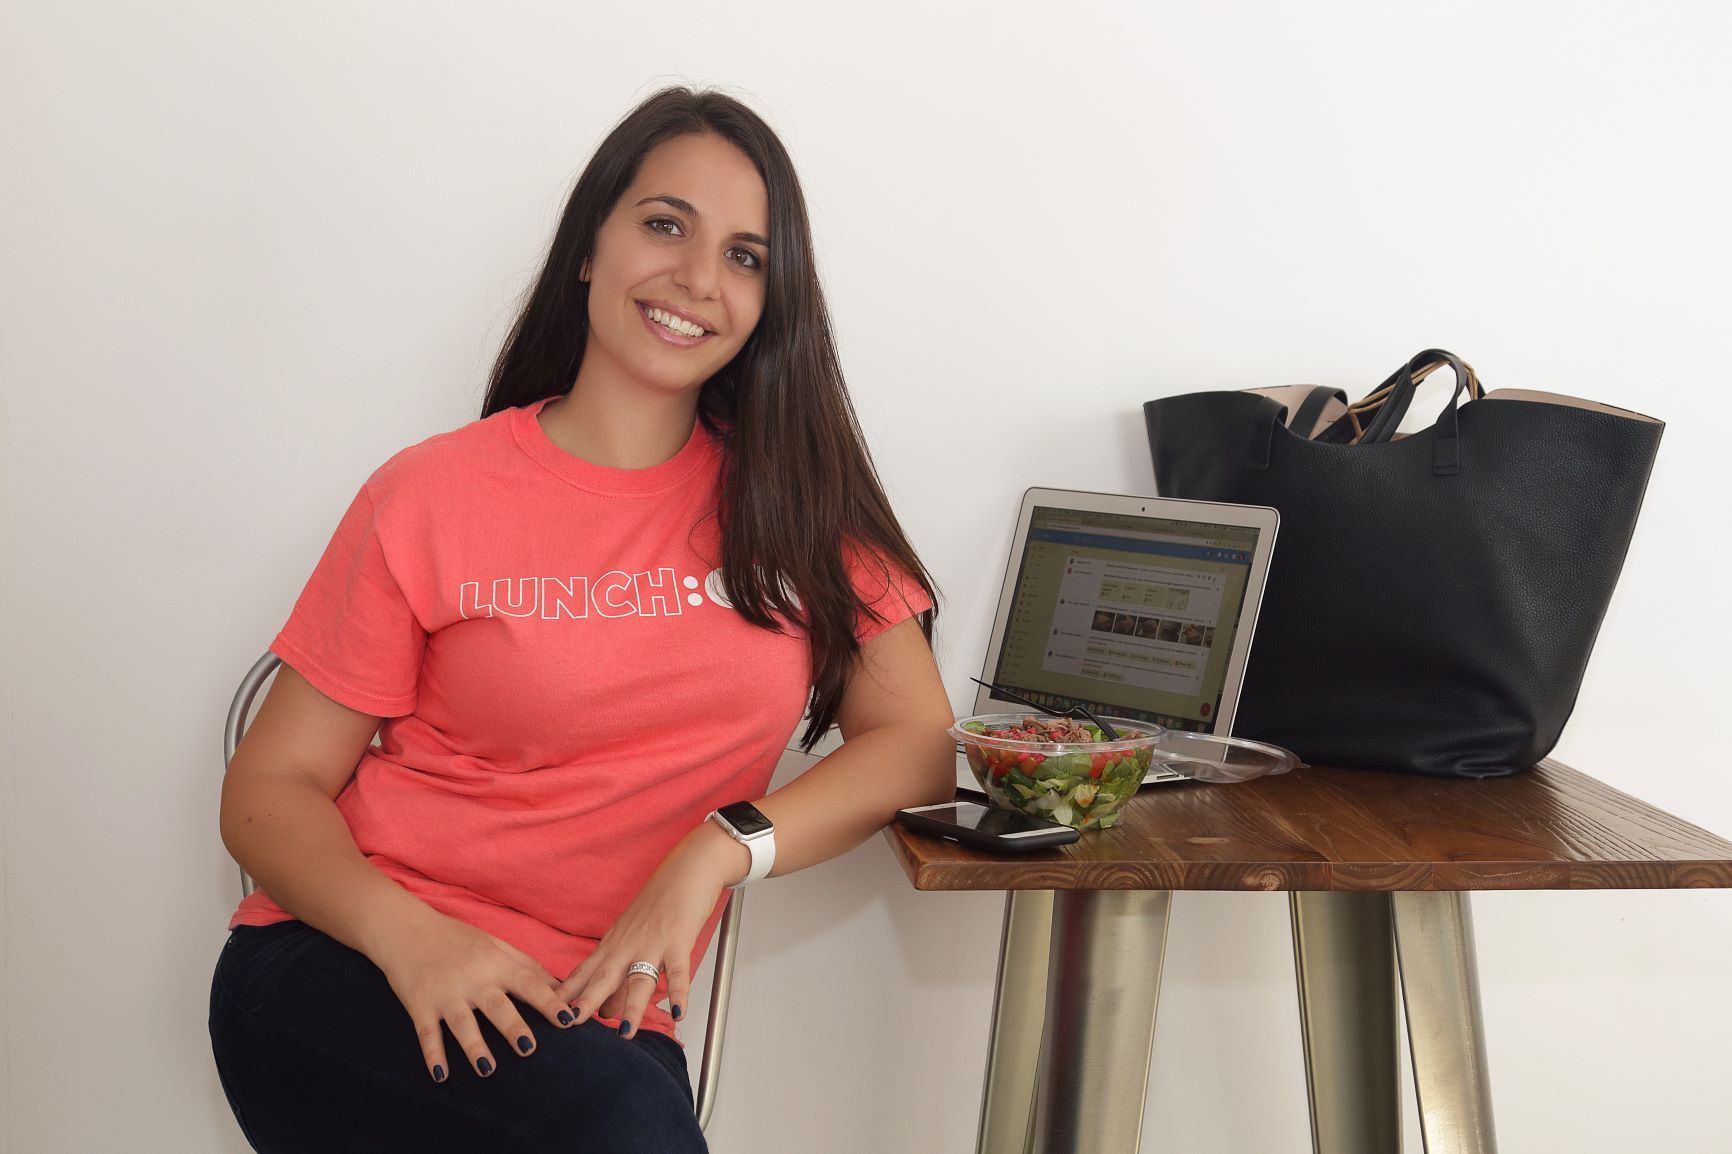 In conversation with Dana Baki of LUNCH:ON